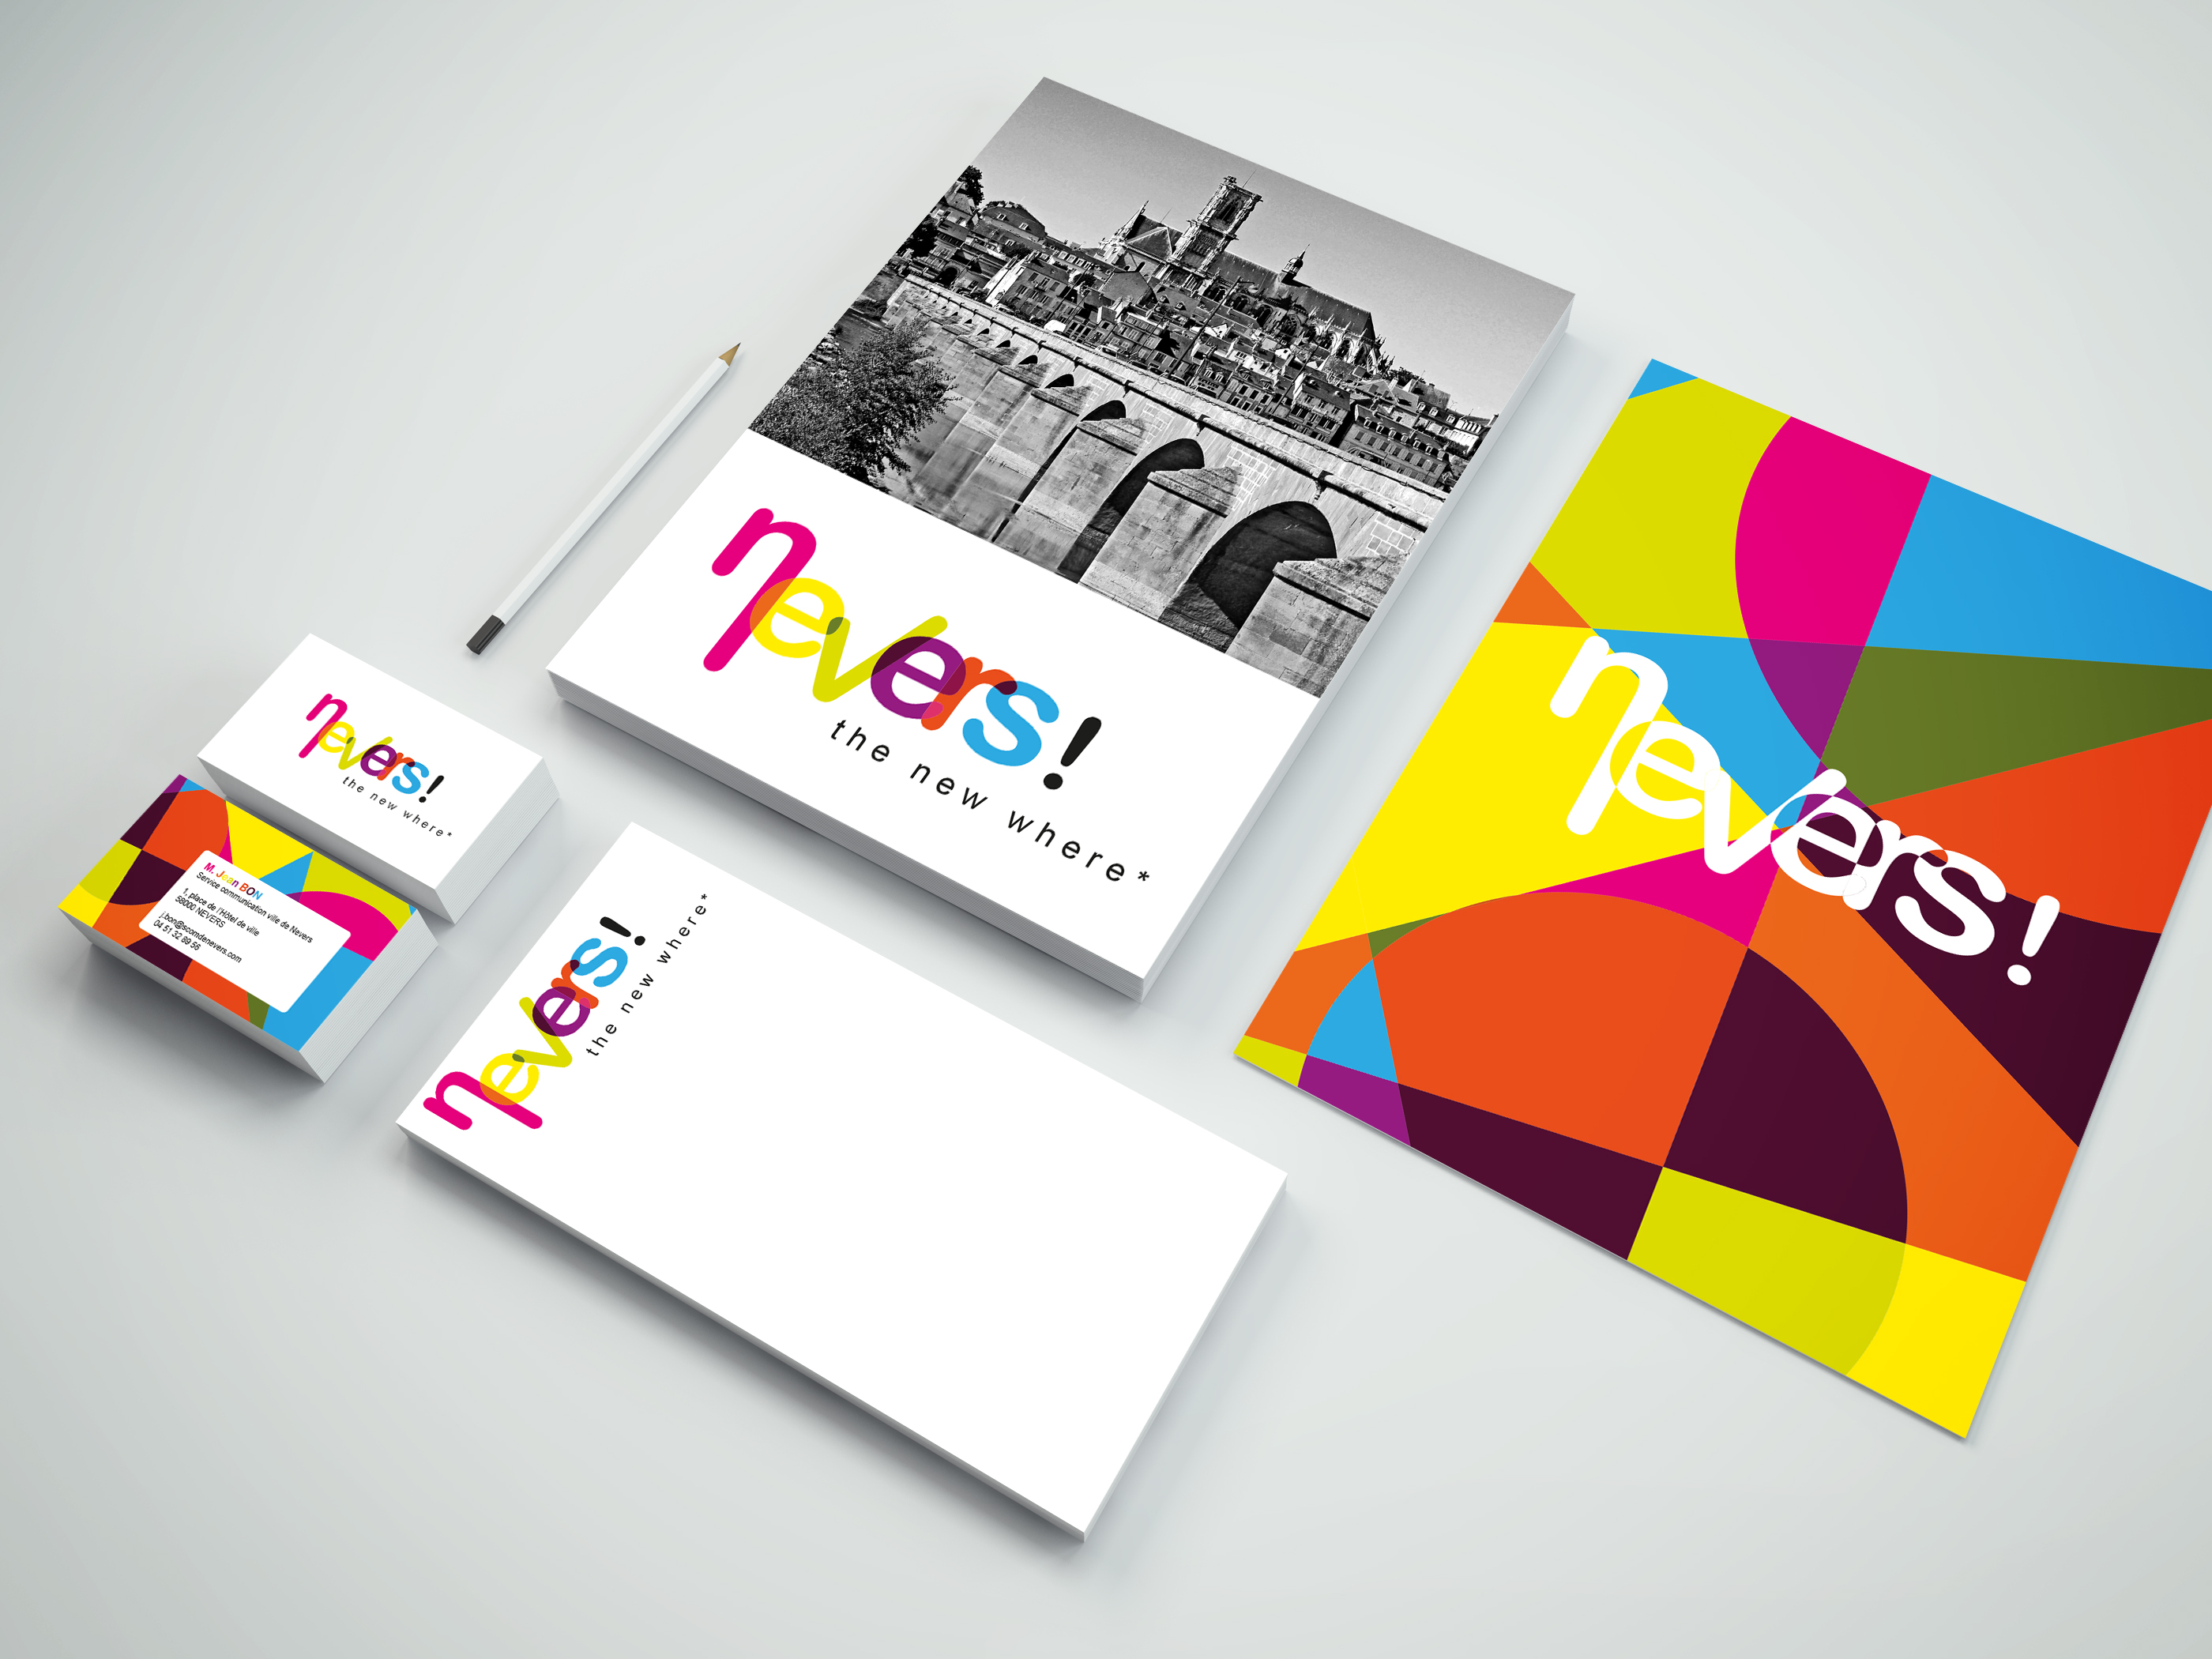 Papeterie_color_refonte_logo_NEVERS